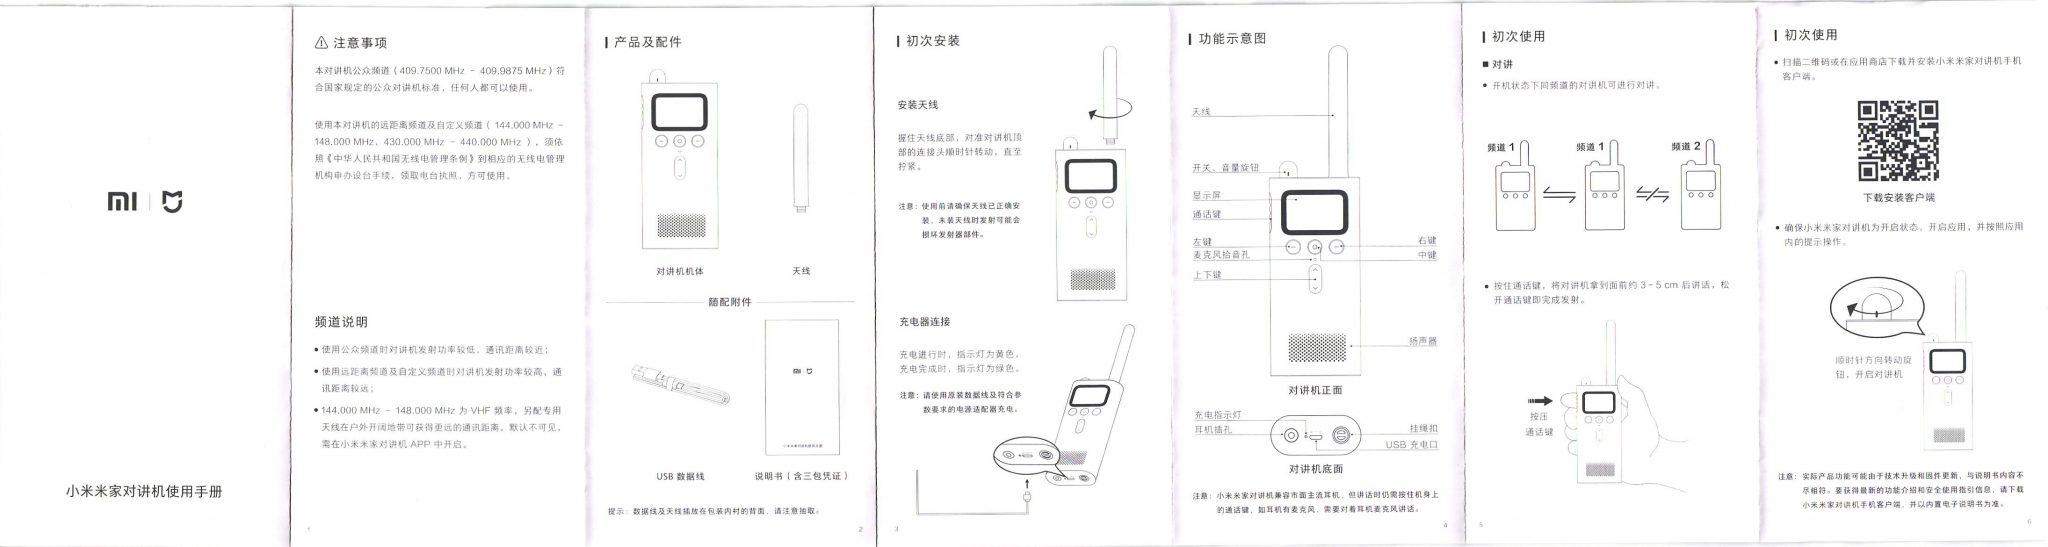 XIAOMI MIJIA UHF/VHF Dual Band Handheld Walkie Talkie Bluetooth 4.0 取説2